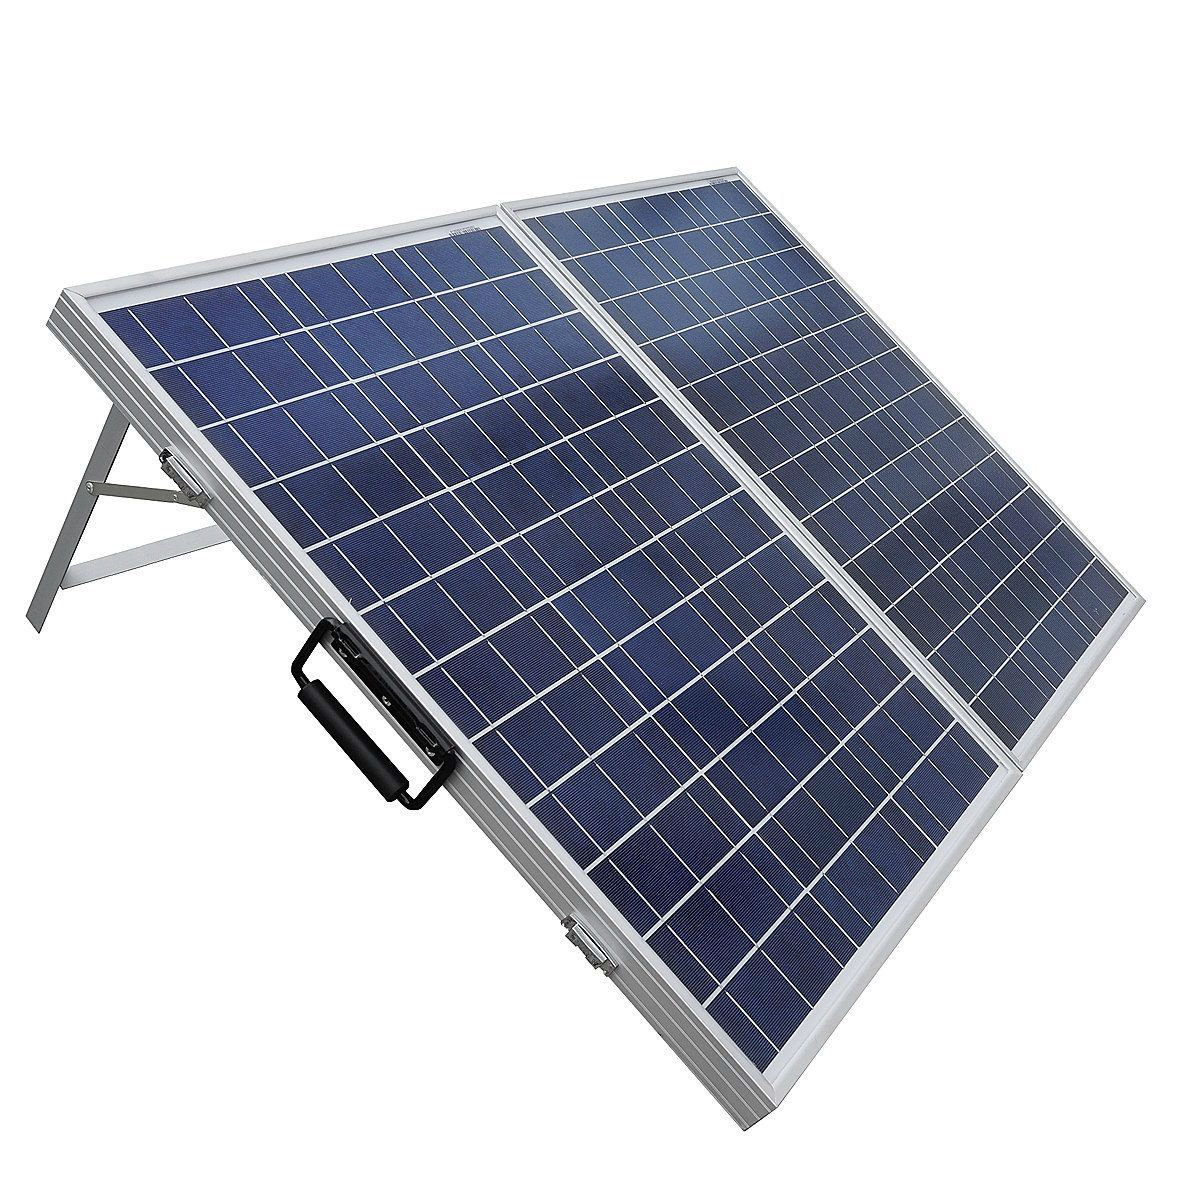 100 Watt Portable Folding Solar Panel 12v Battery Charger With Charge Controller Best Solar Panels Solar Panels For Home Solar Panels